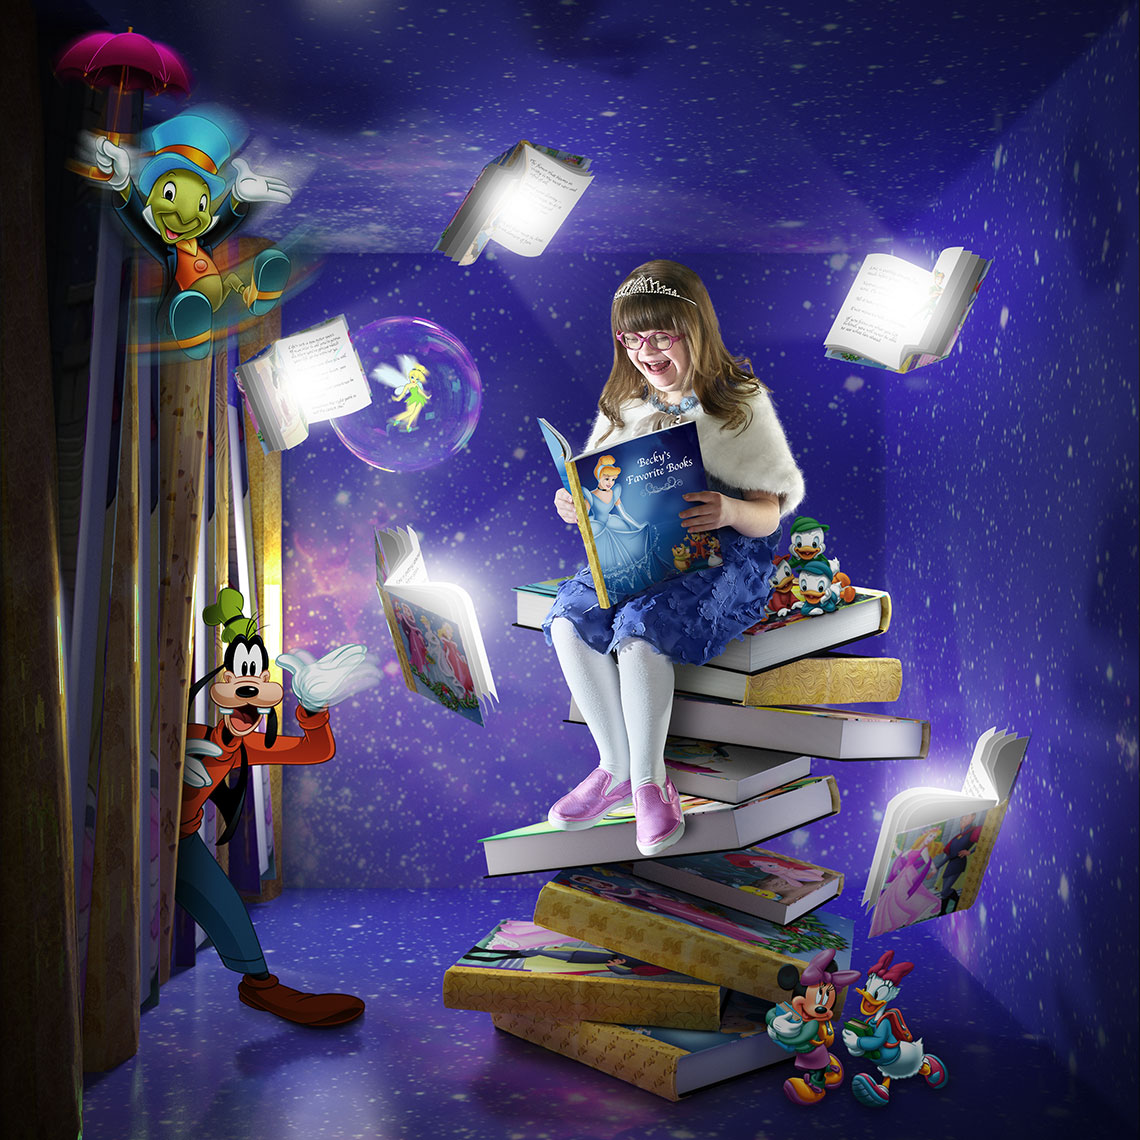 Young girl reading Disney books